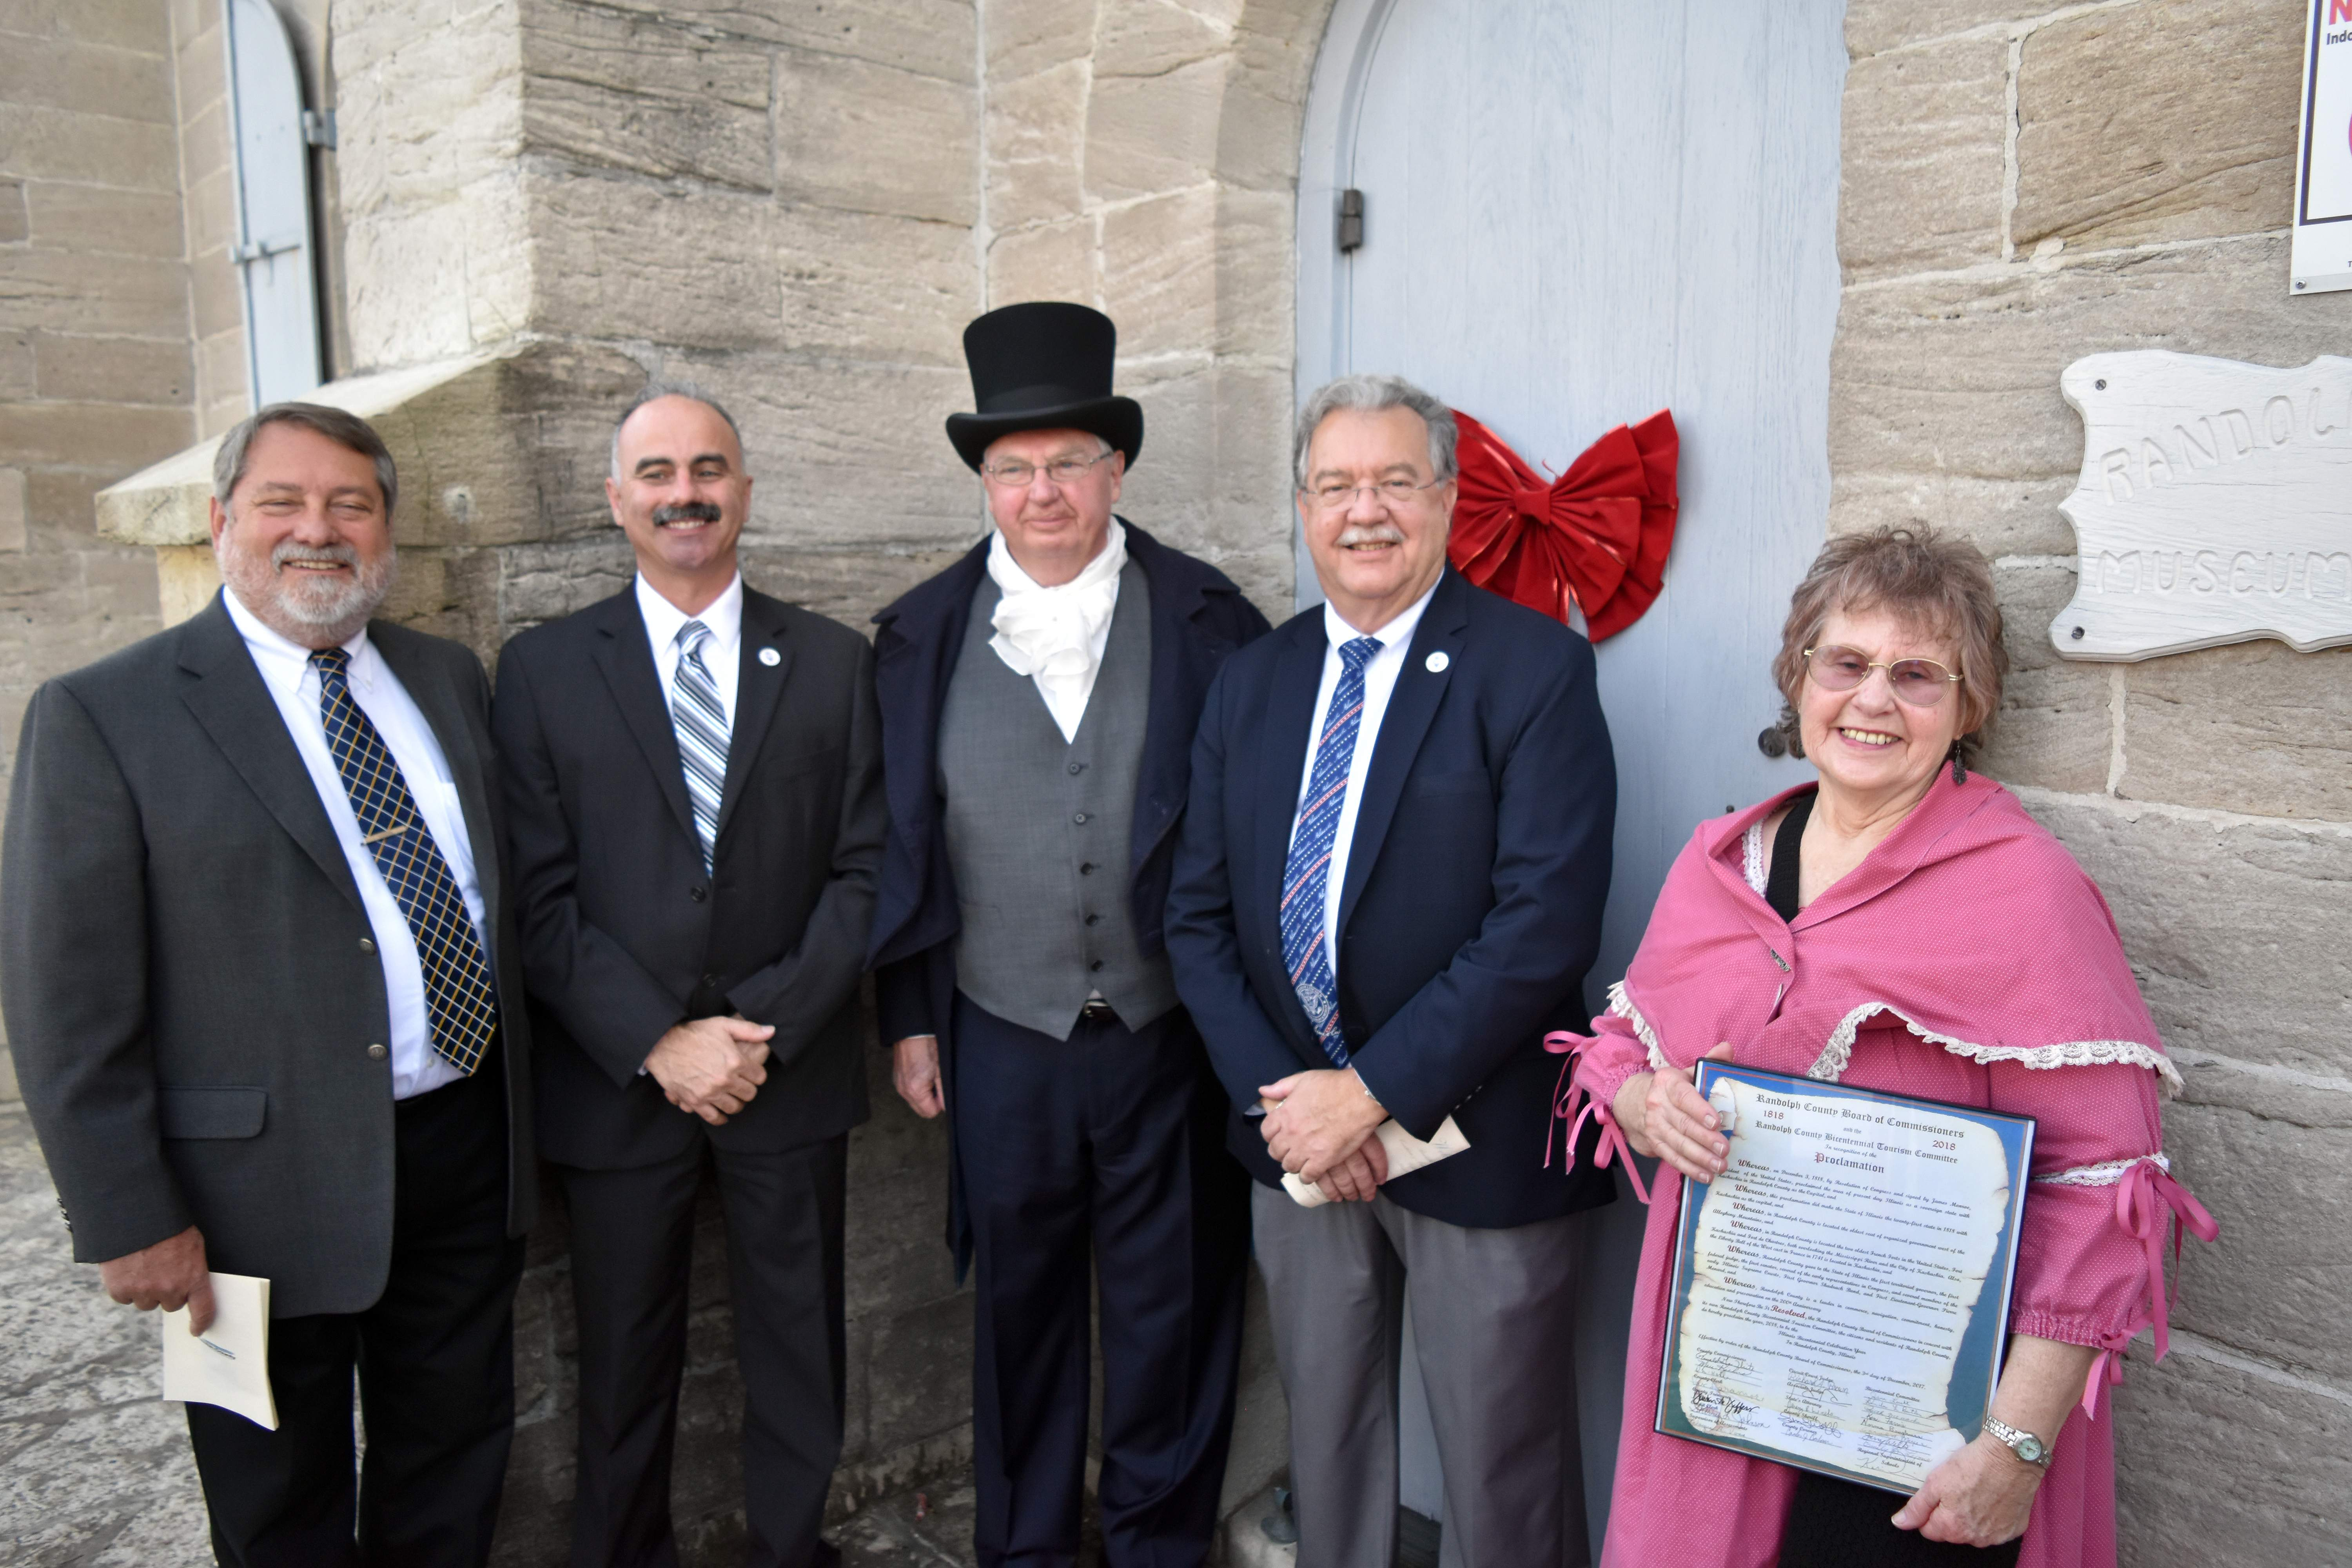 Pictured are, from left, Randolph County Commissioner Dave Holder, Commissioner Ronnie White, Ed Fisher, Commissioner Marc Kiehna and county historian Emily Lyons during a ceremony on Sunday to mark the official beginning of the state's bicentennial year.